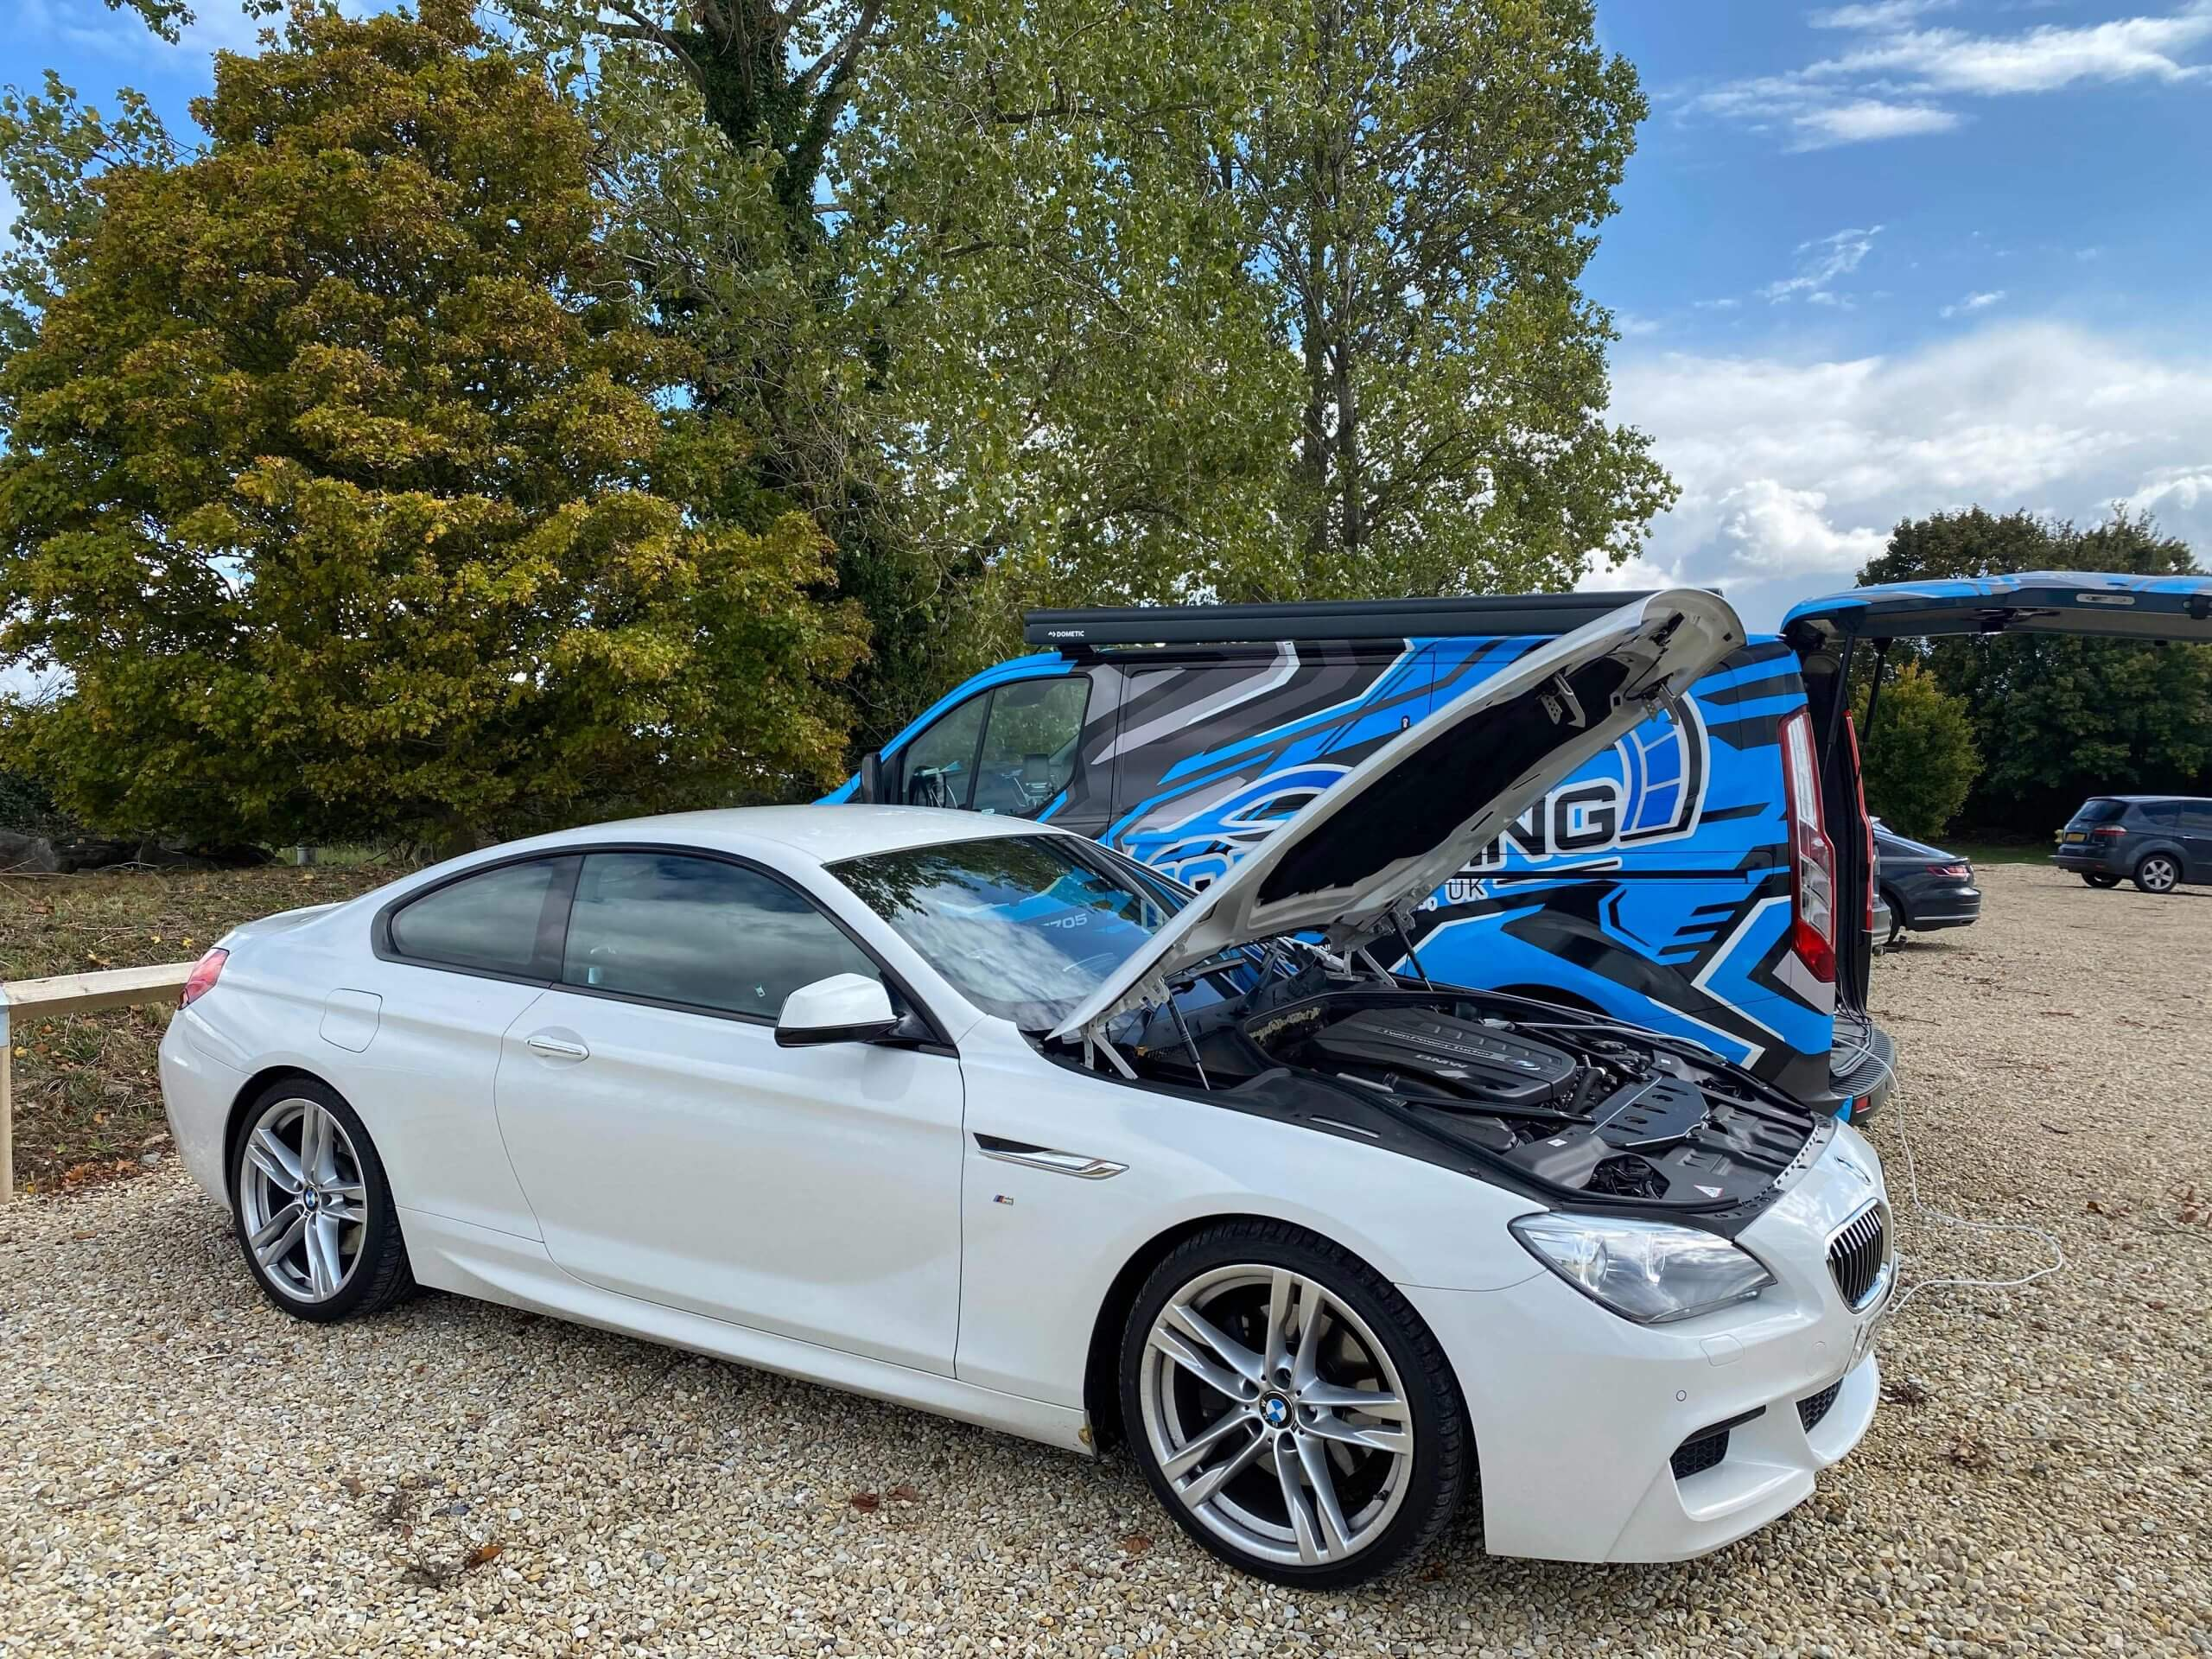 Mobile service remapping a BMW